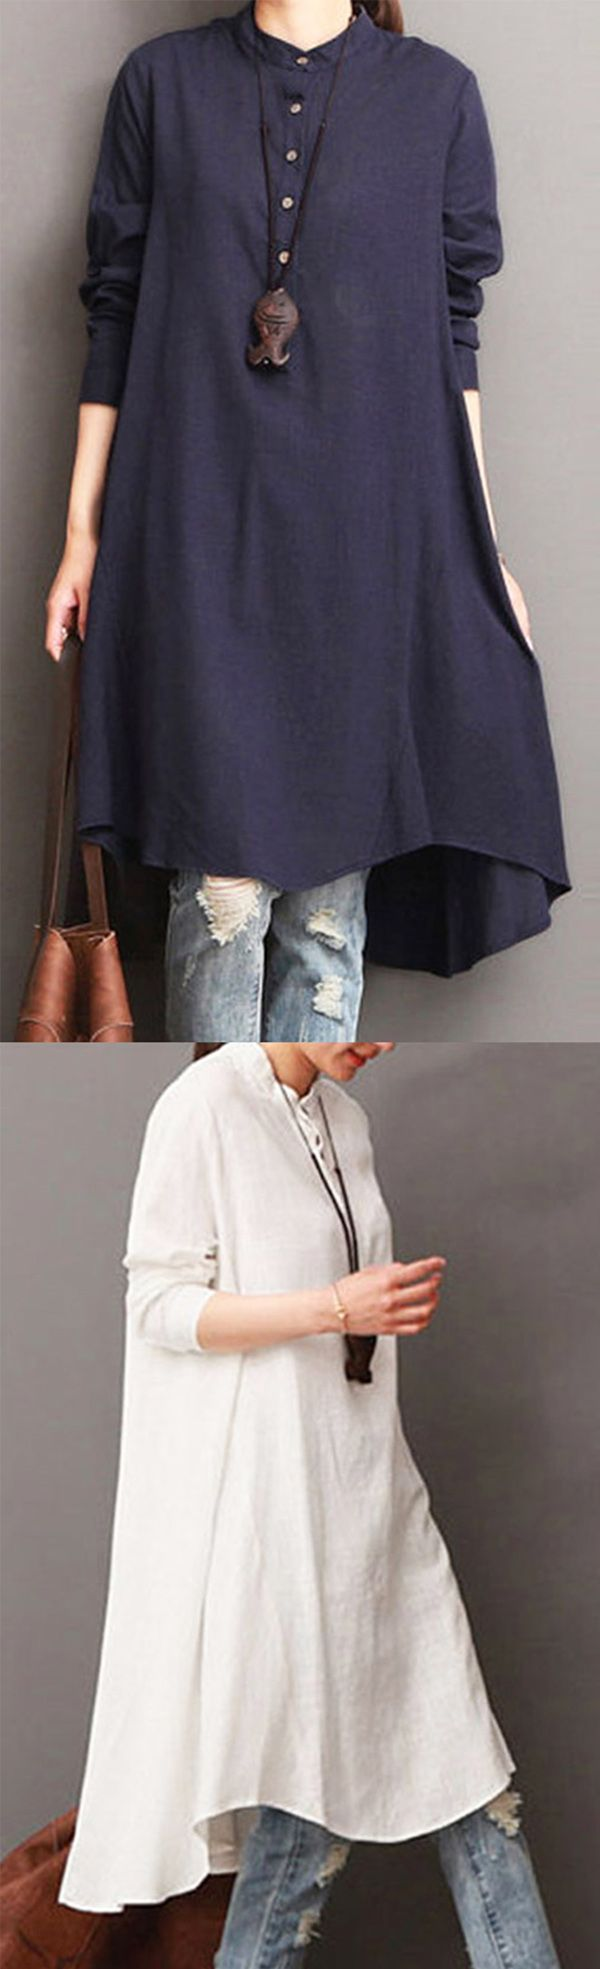 60%OFF&Free shipping. Women Button Down Baggy Blouse Casual Loose Asymmetric Shirt Dresses. Shop this look right now~